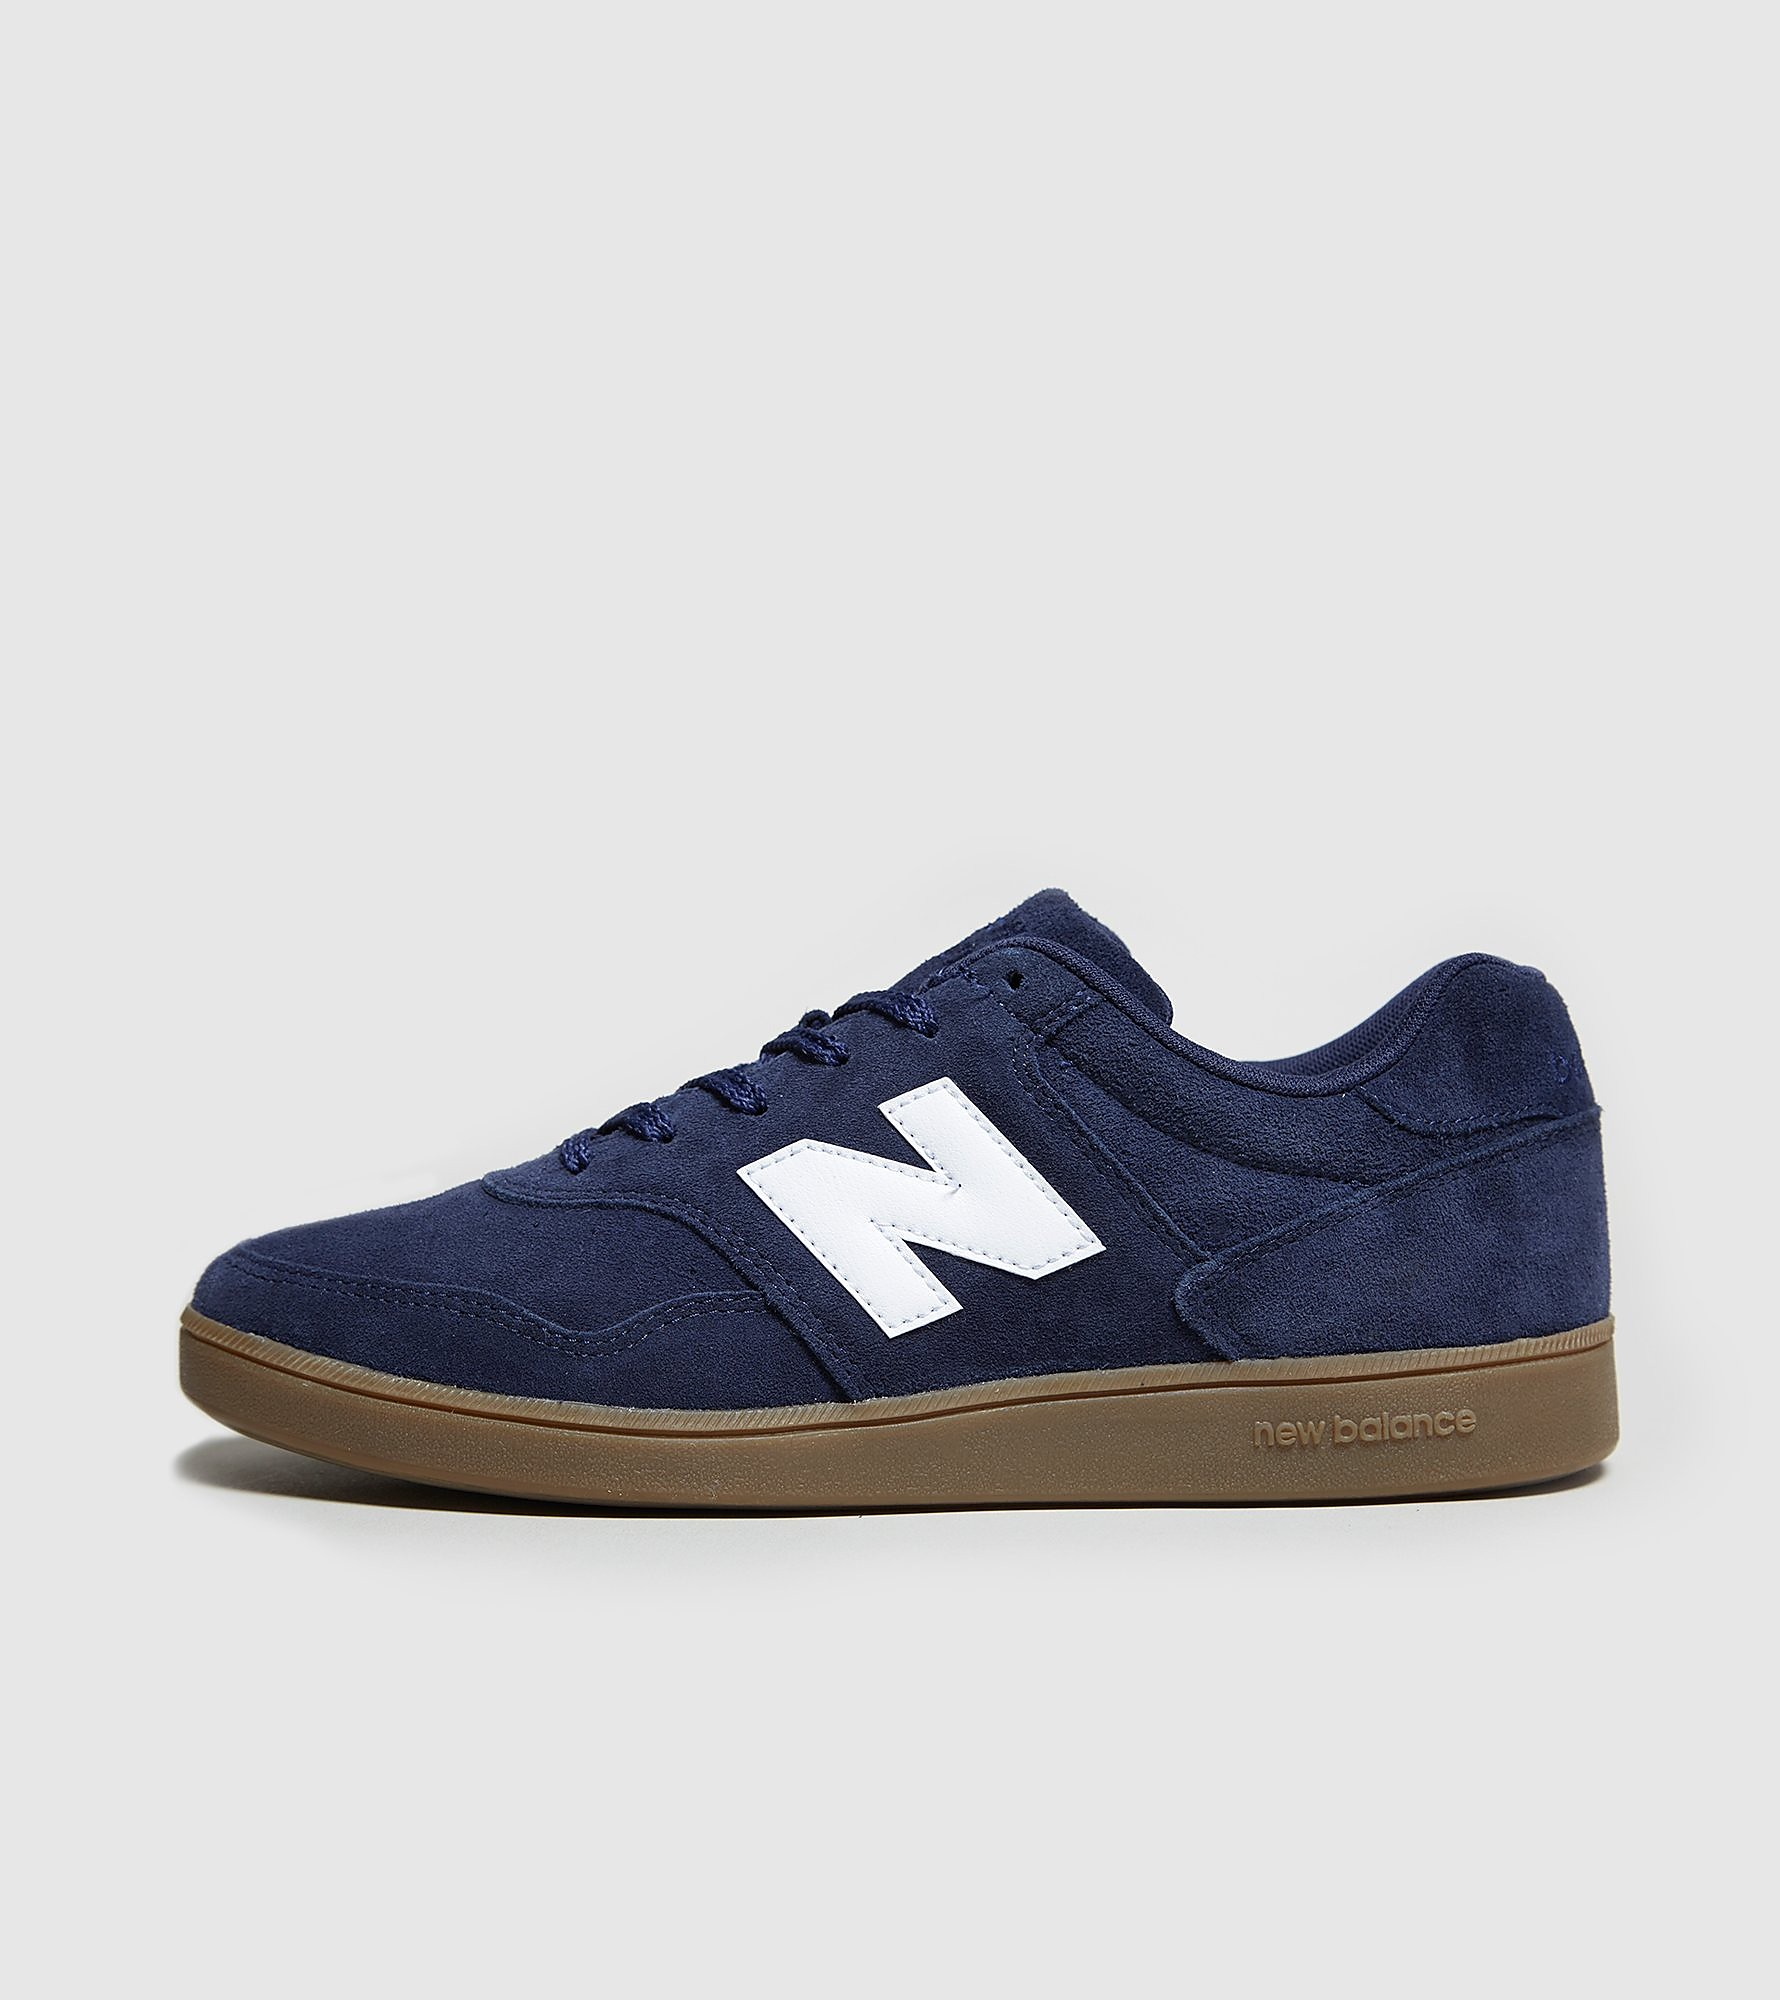 zapatillas new balance 288 suede